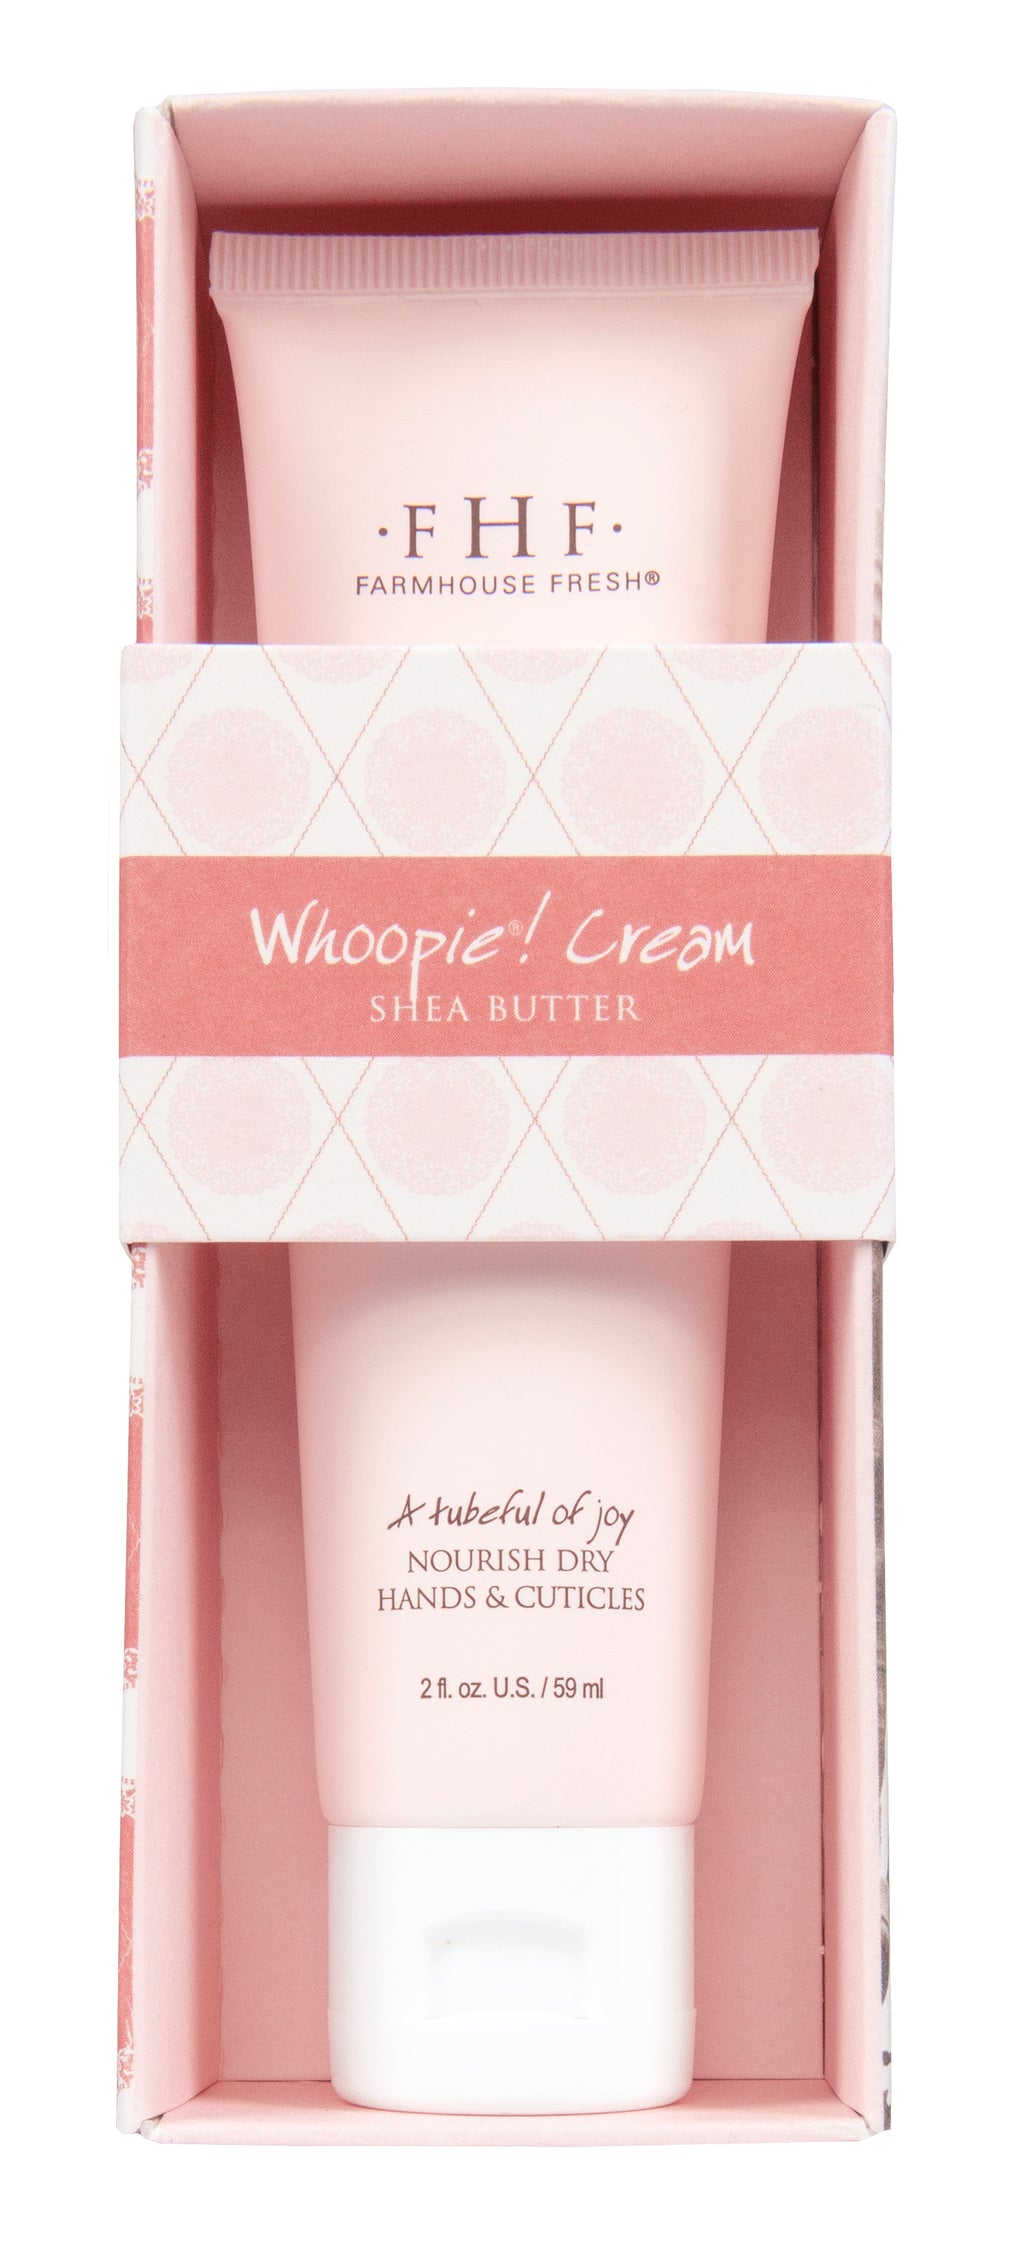 A tubeful of joy.   Drench your hands in irresistible yum!  This supple cream nourishes dry skin and has a delectable aroma of freshly baked whoopie pies.